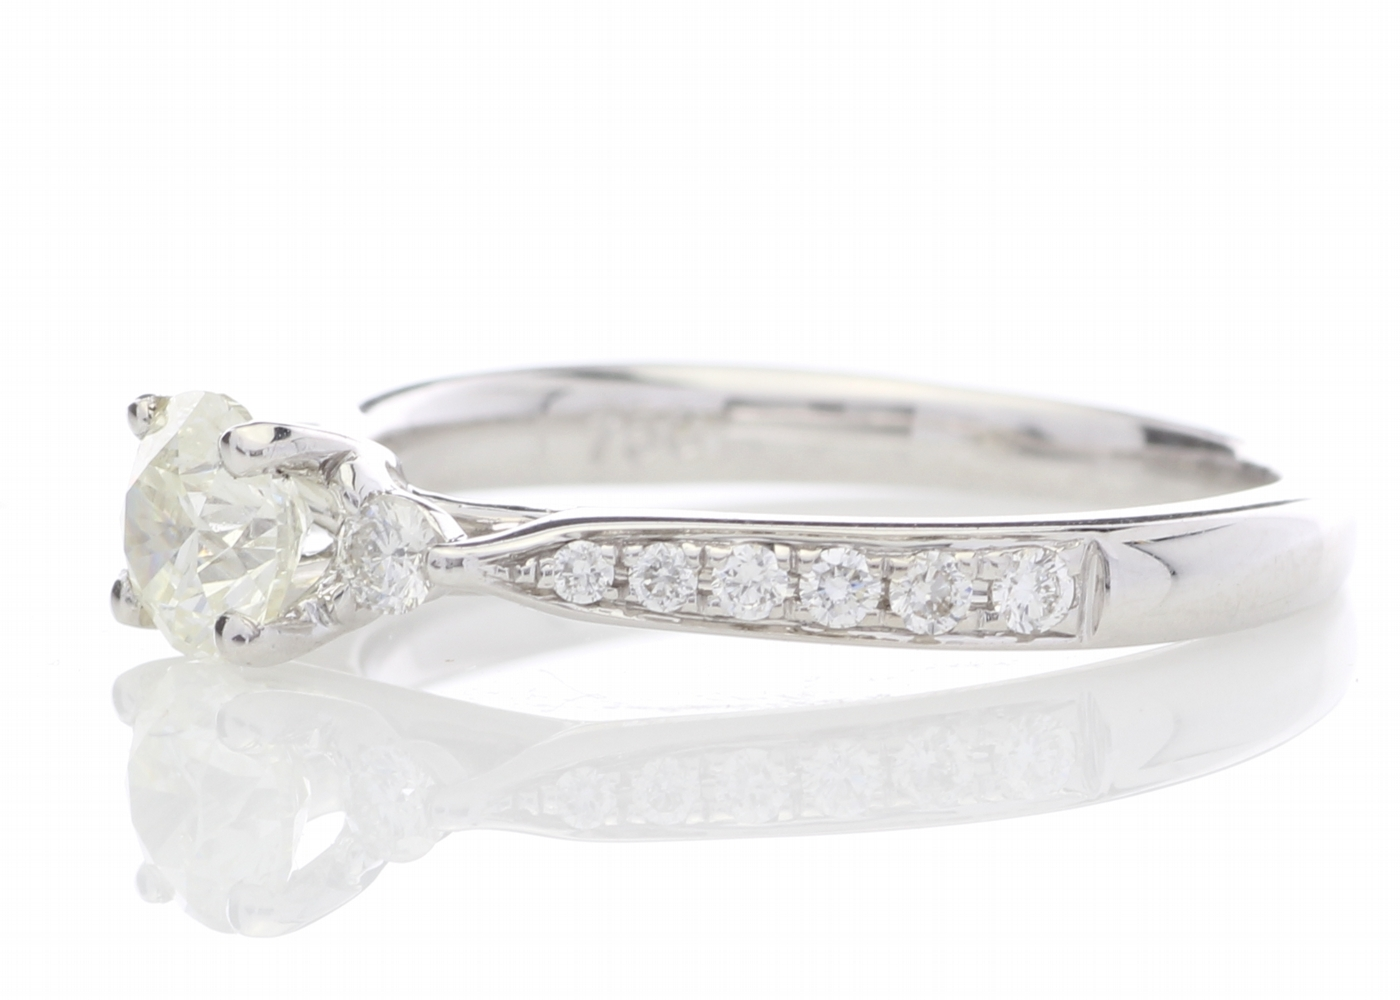 18ct White Gold Diamond Ring With Stone Set Shoulders 0.72 Carats - Image 2 of 5